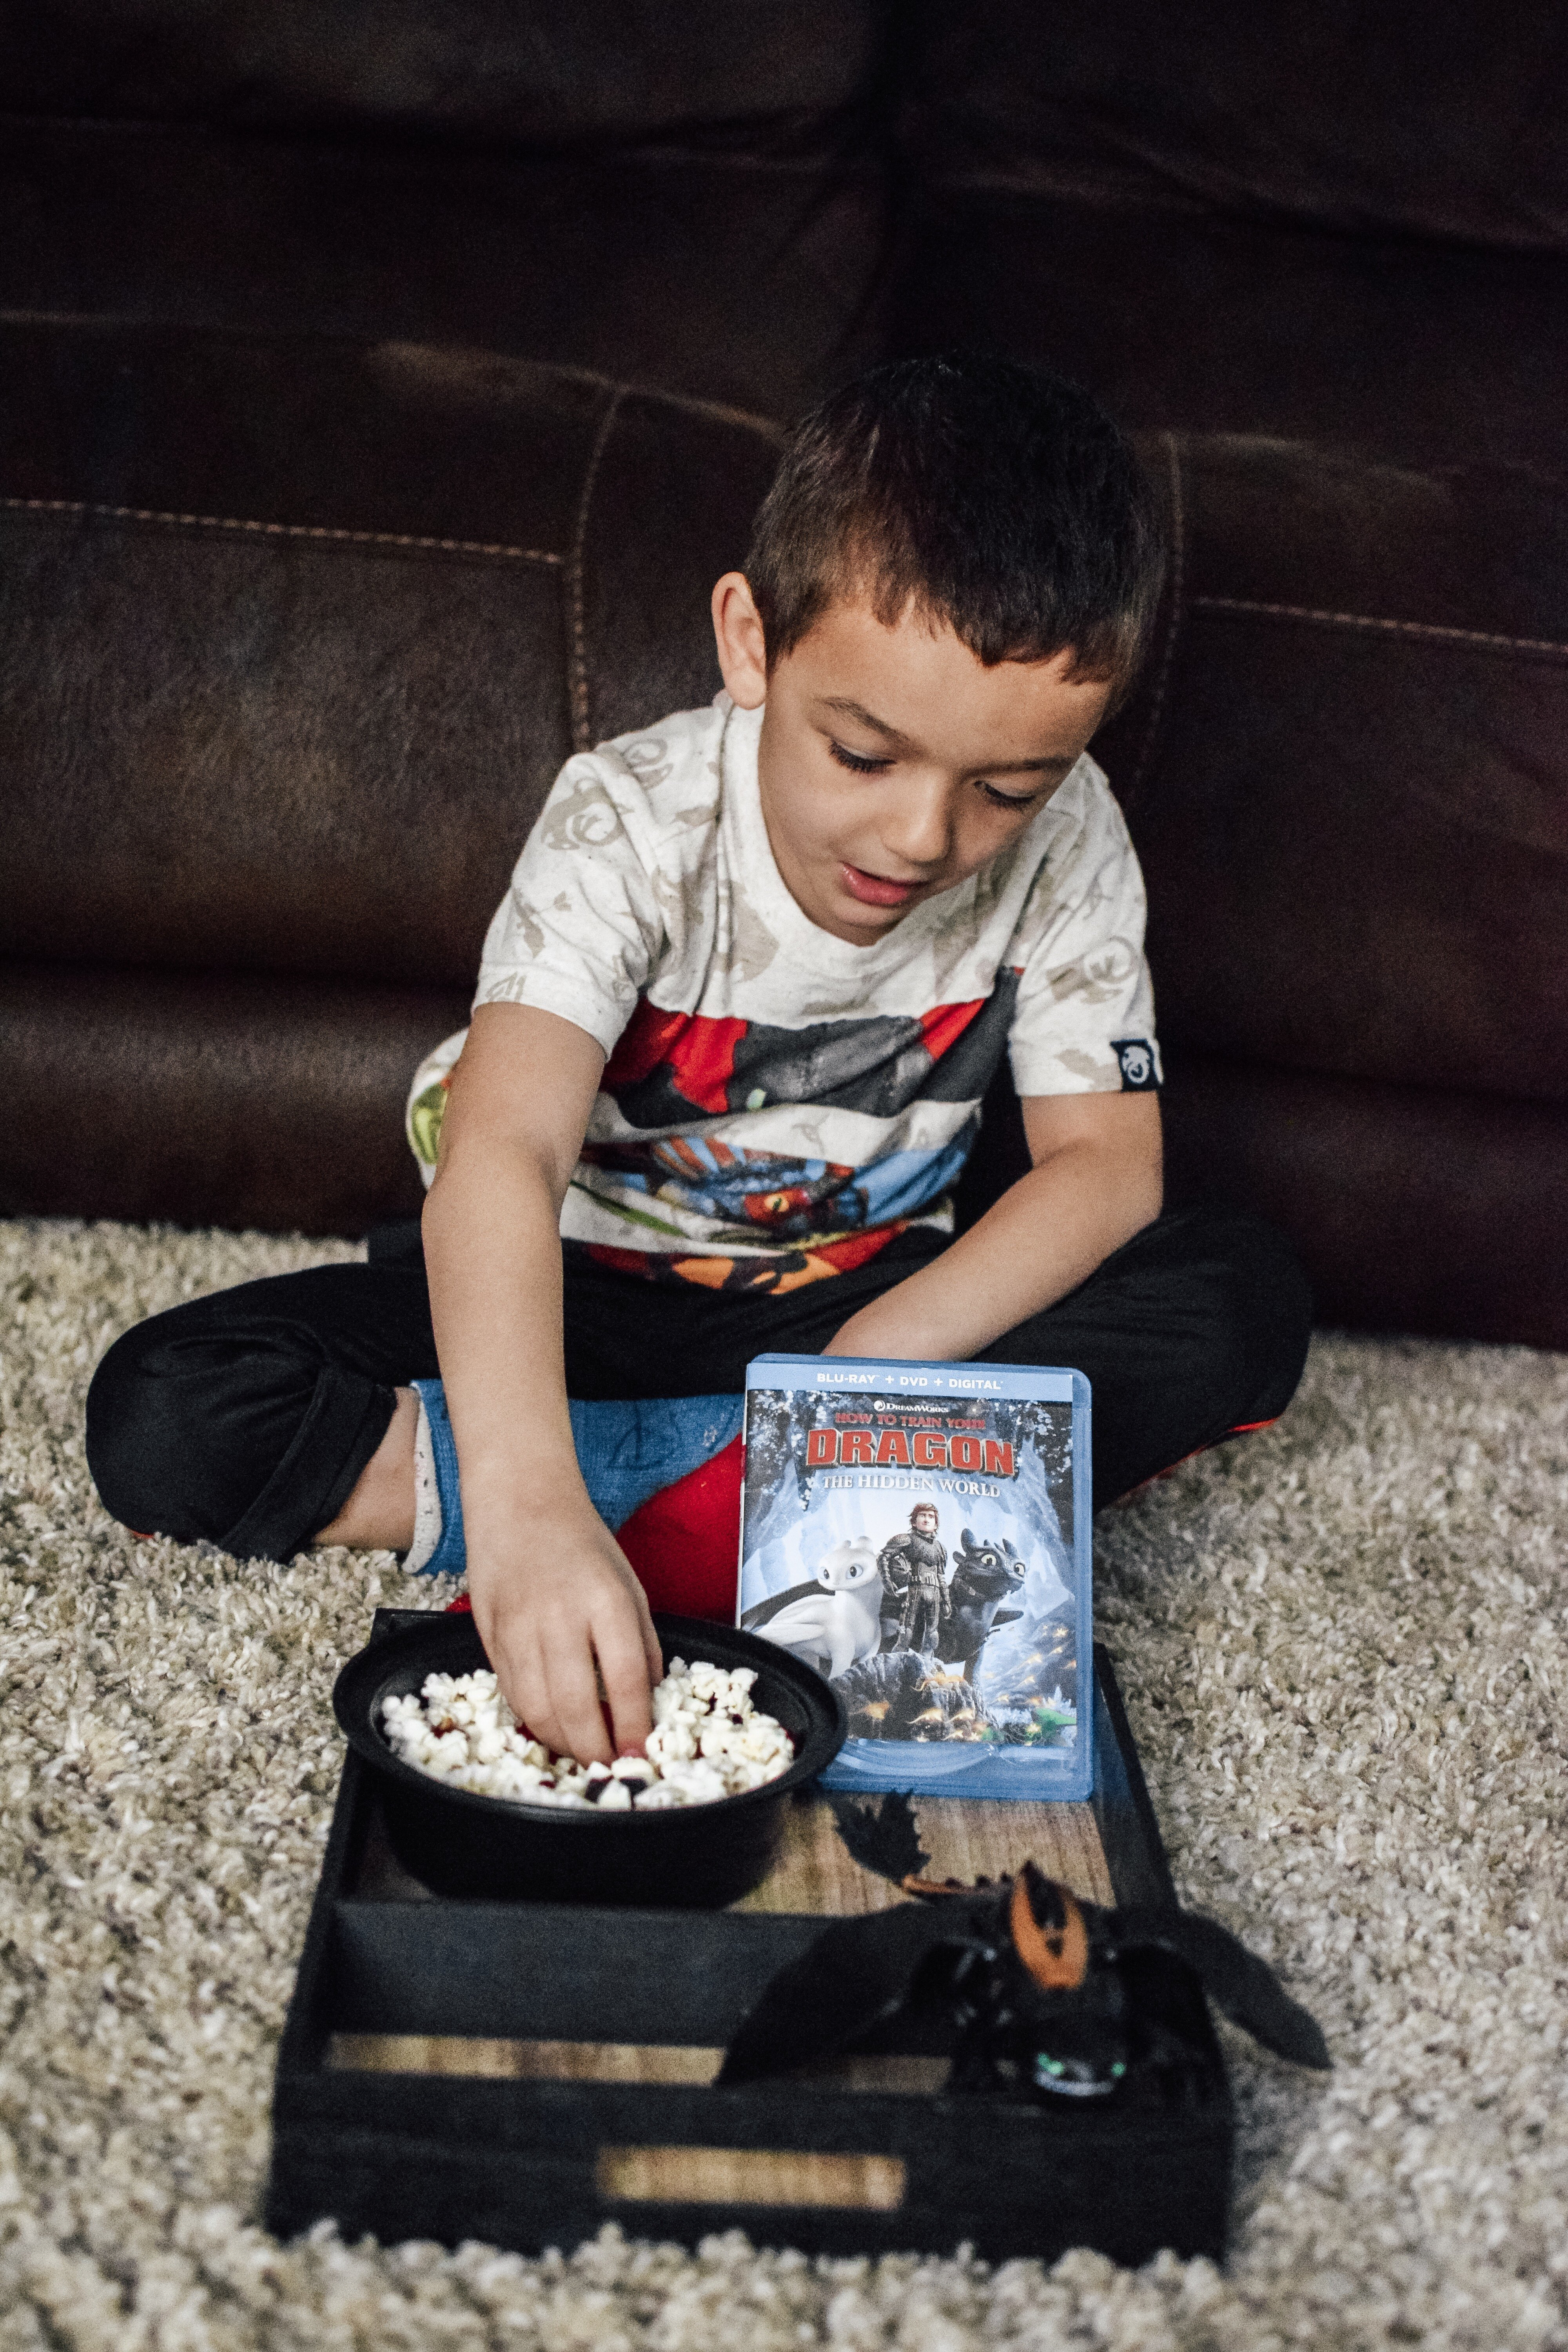 Simple movie caddy for kids